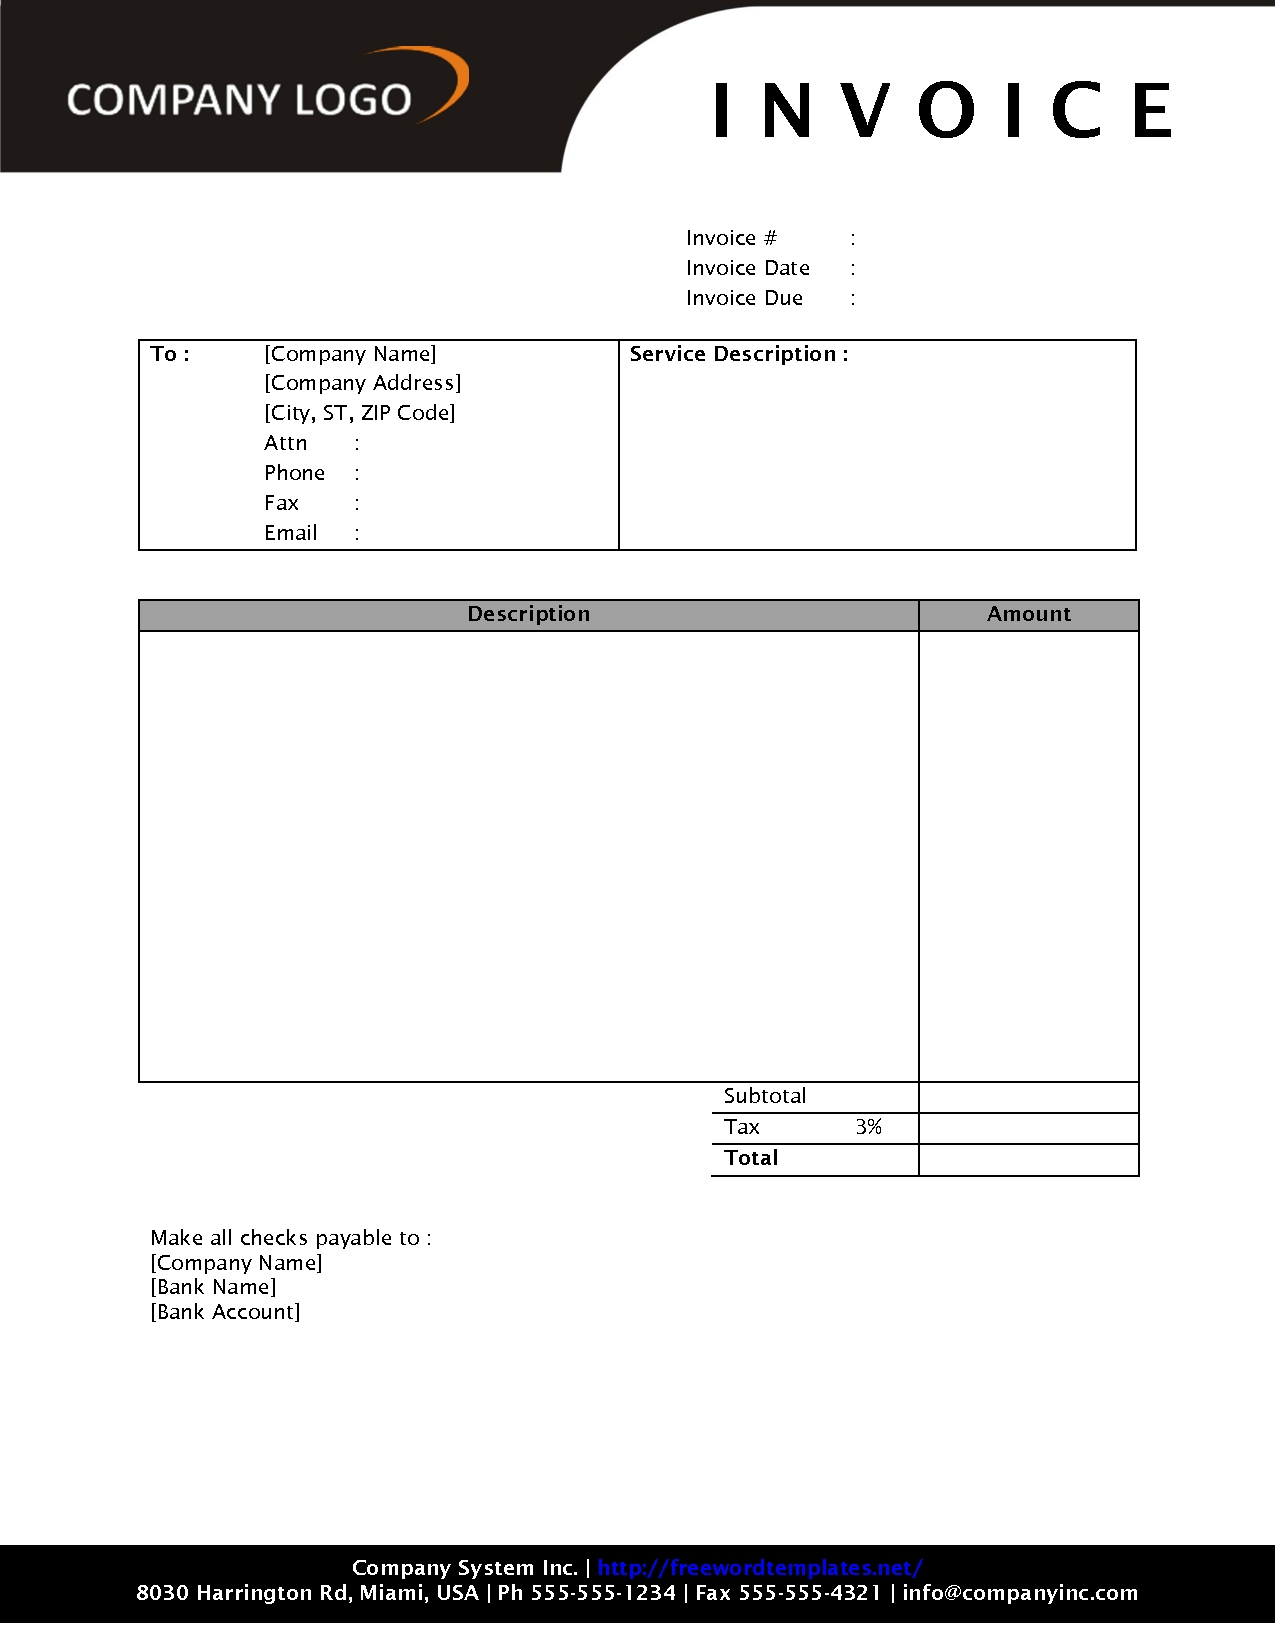 free invoice download 14 best photos of download form free invoice template free 1275 X 1650